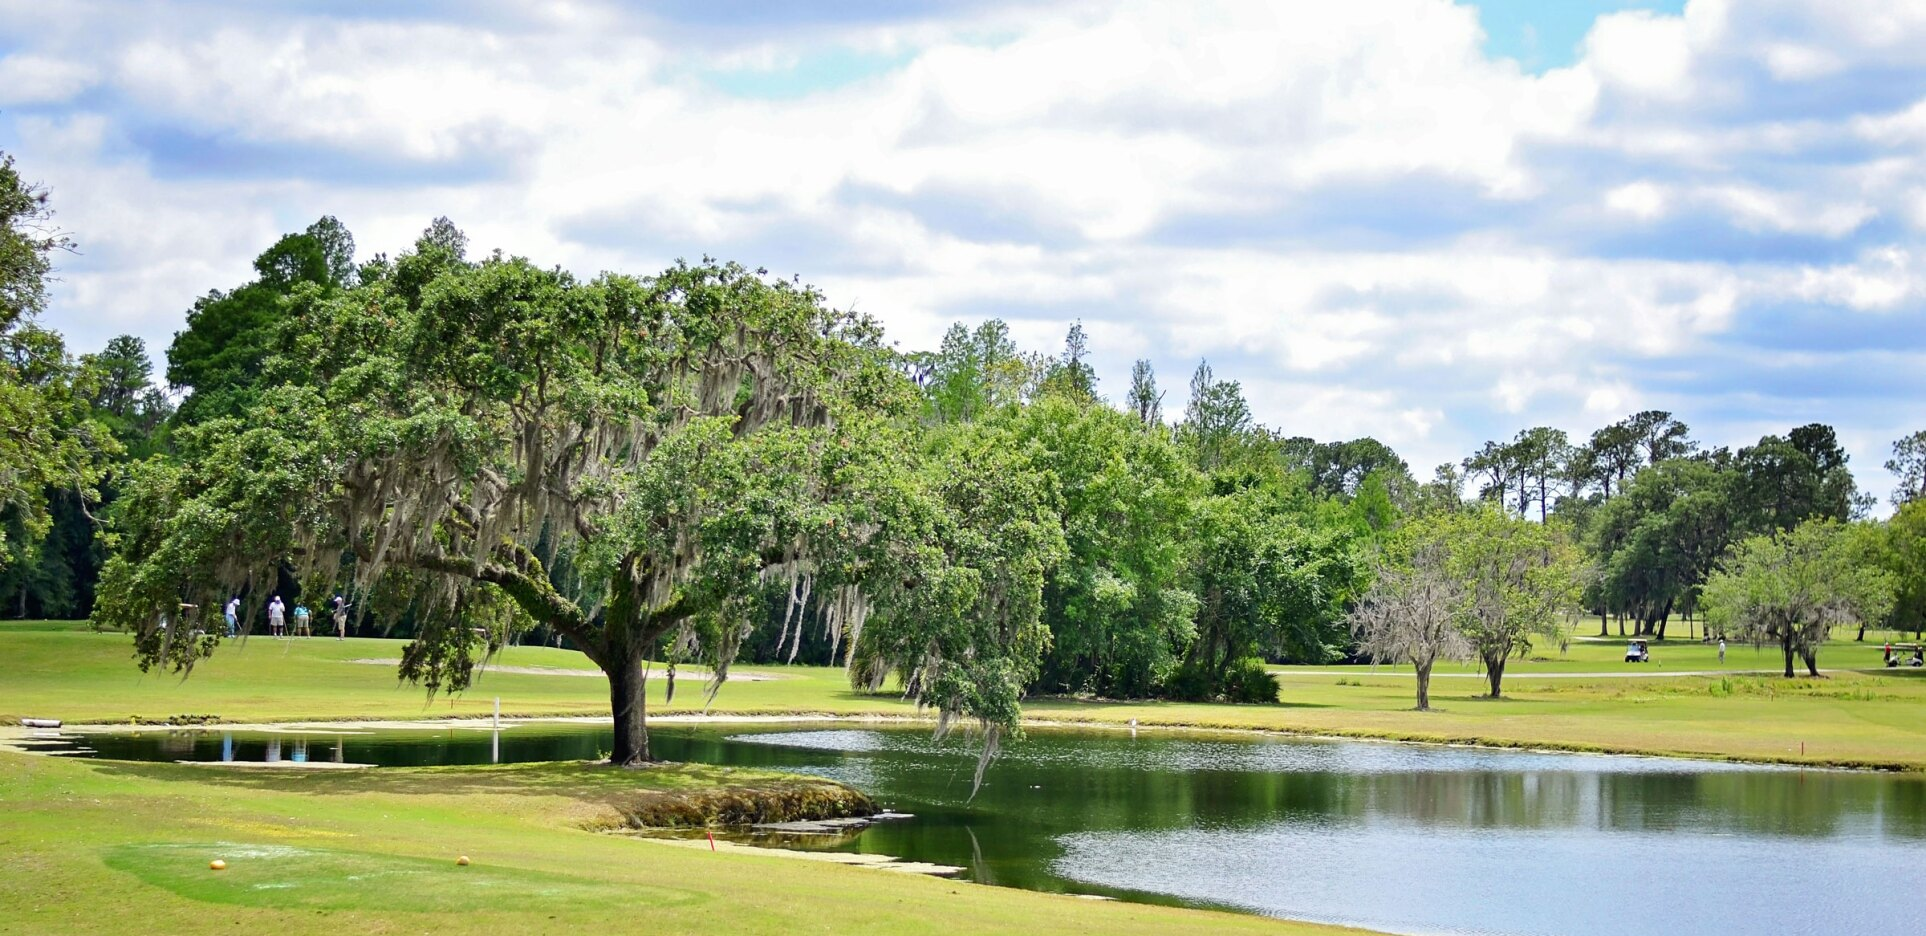 The Claw at USF golf course with Spanish moss tree in Tampa